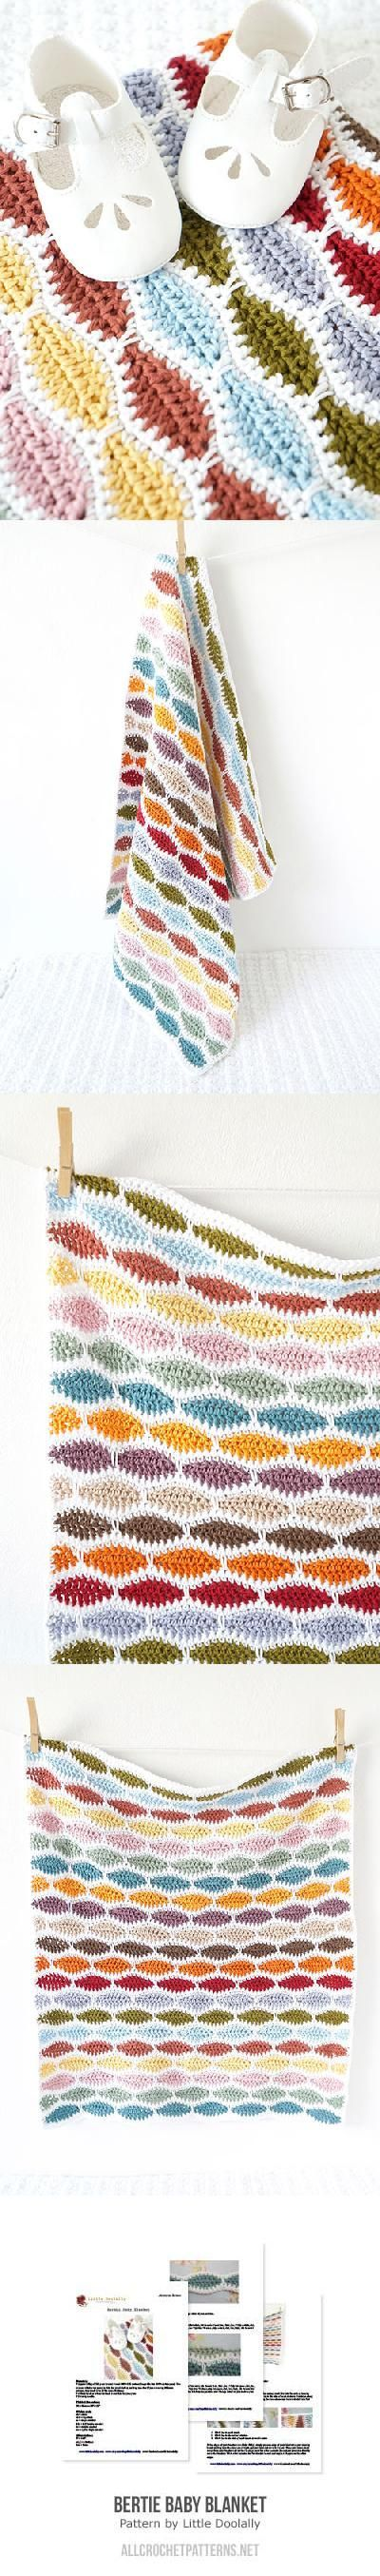 Bertie Baby Blanket crochet pattern by Little Doolally